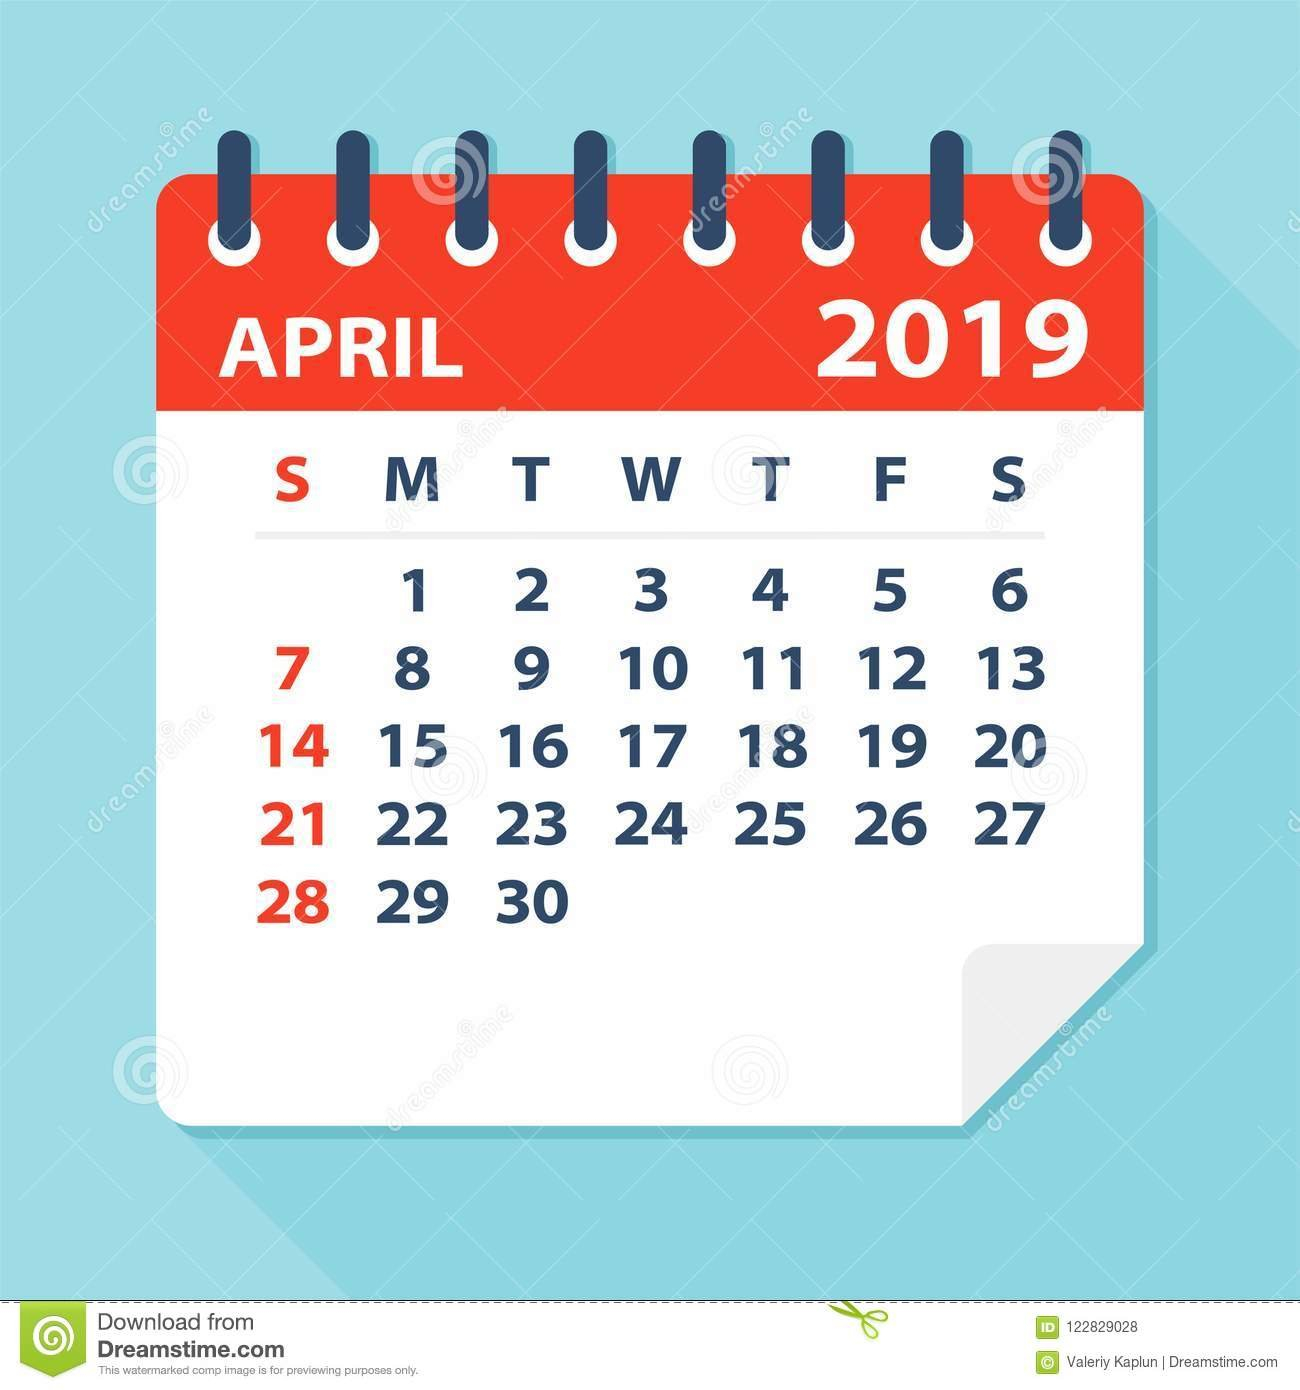 April 2019 Calendar Leaf - Vector Illustration Stock Illustration April 7 2019 Calendar